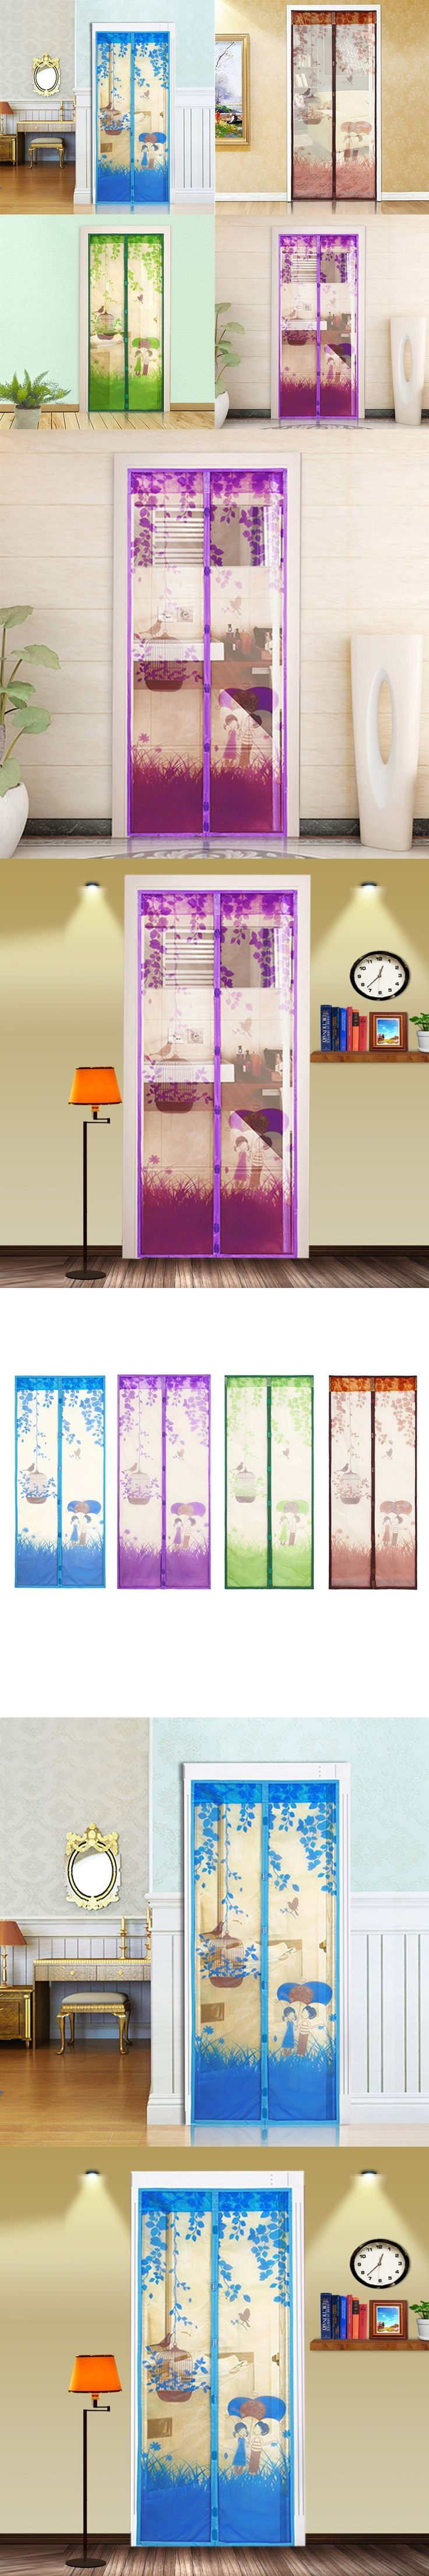 1Pcs 4 Colors Summer Style Bug Mesh Door Magnetic Curtains Net Screen Anti Mosquito Bug Fly Home Gate Door